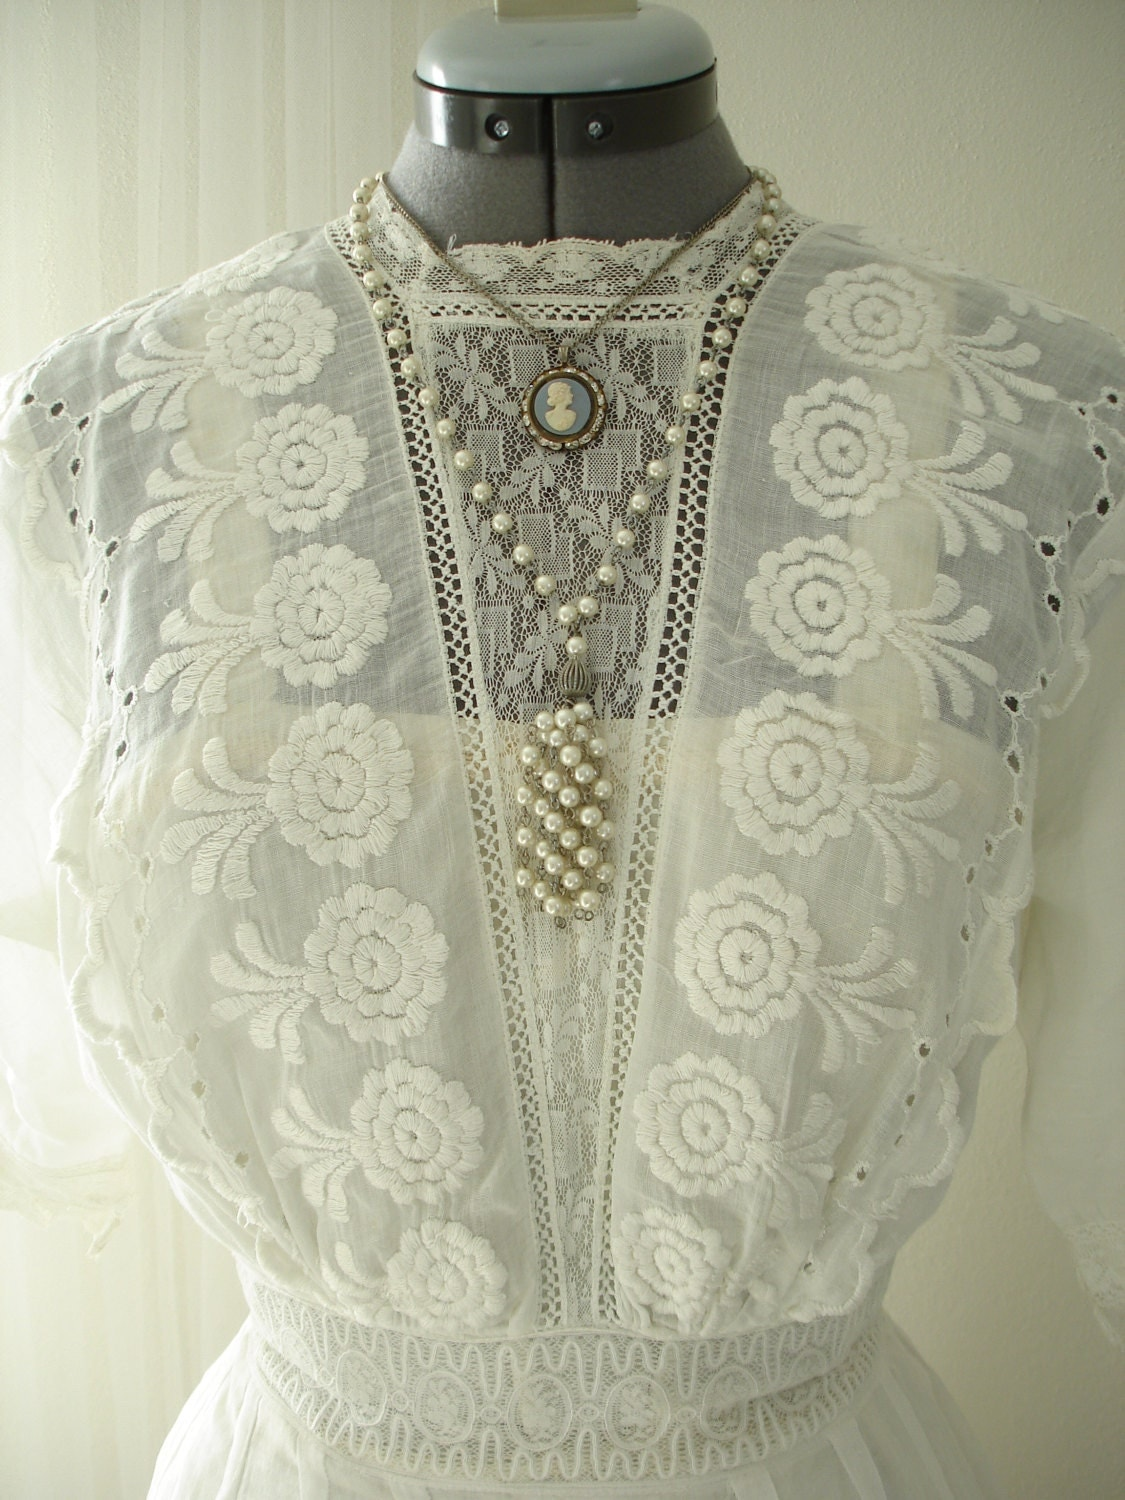 Antique 1800's Embroidered Cotton Day/Wedding Dress